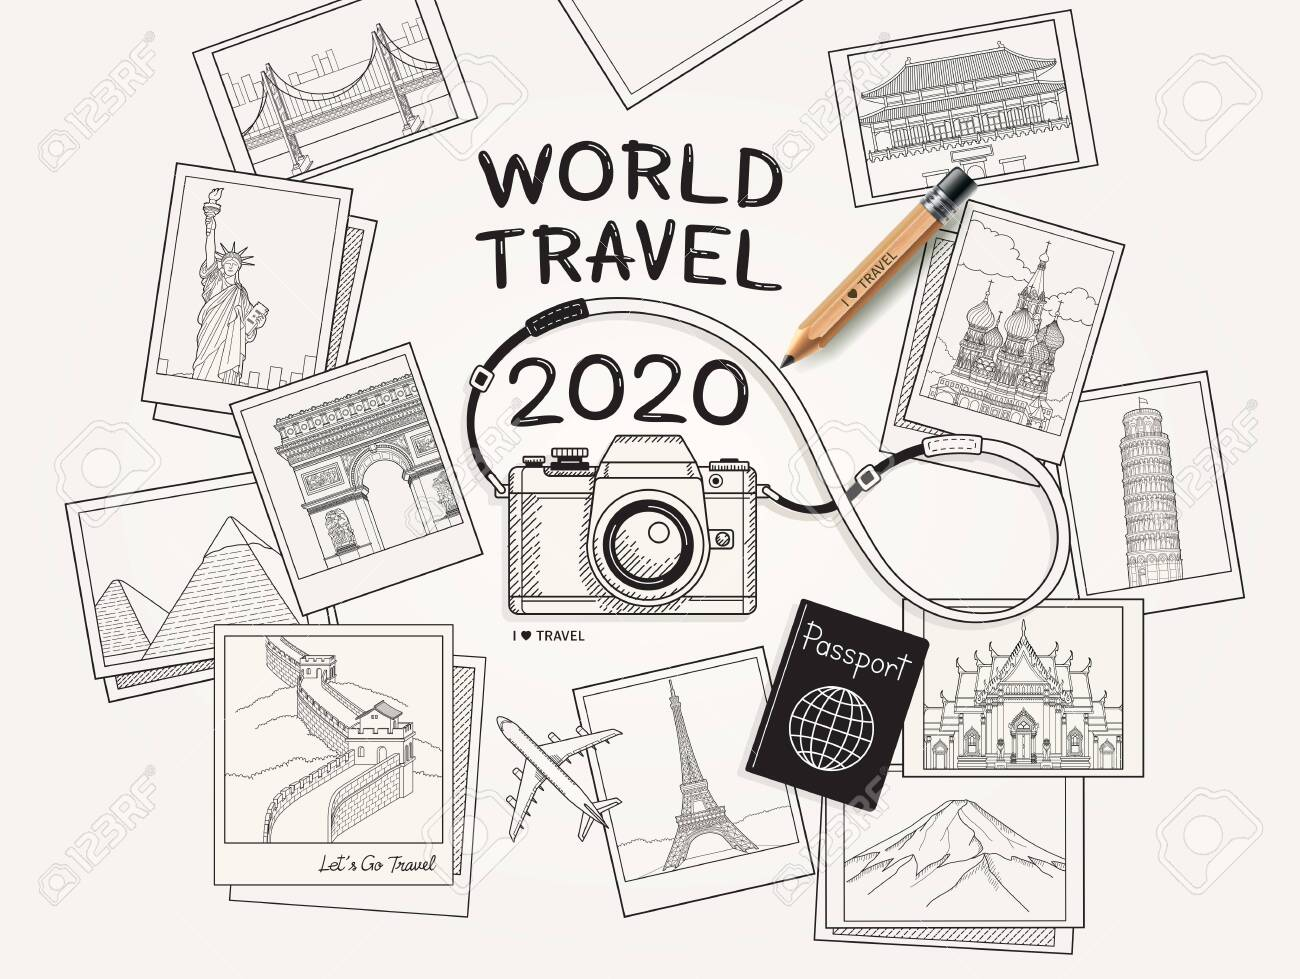 World travel 2020 concept. Camera and famous landmarks photo picture drawing style vector illustration. - 134379050